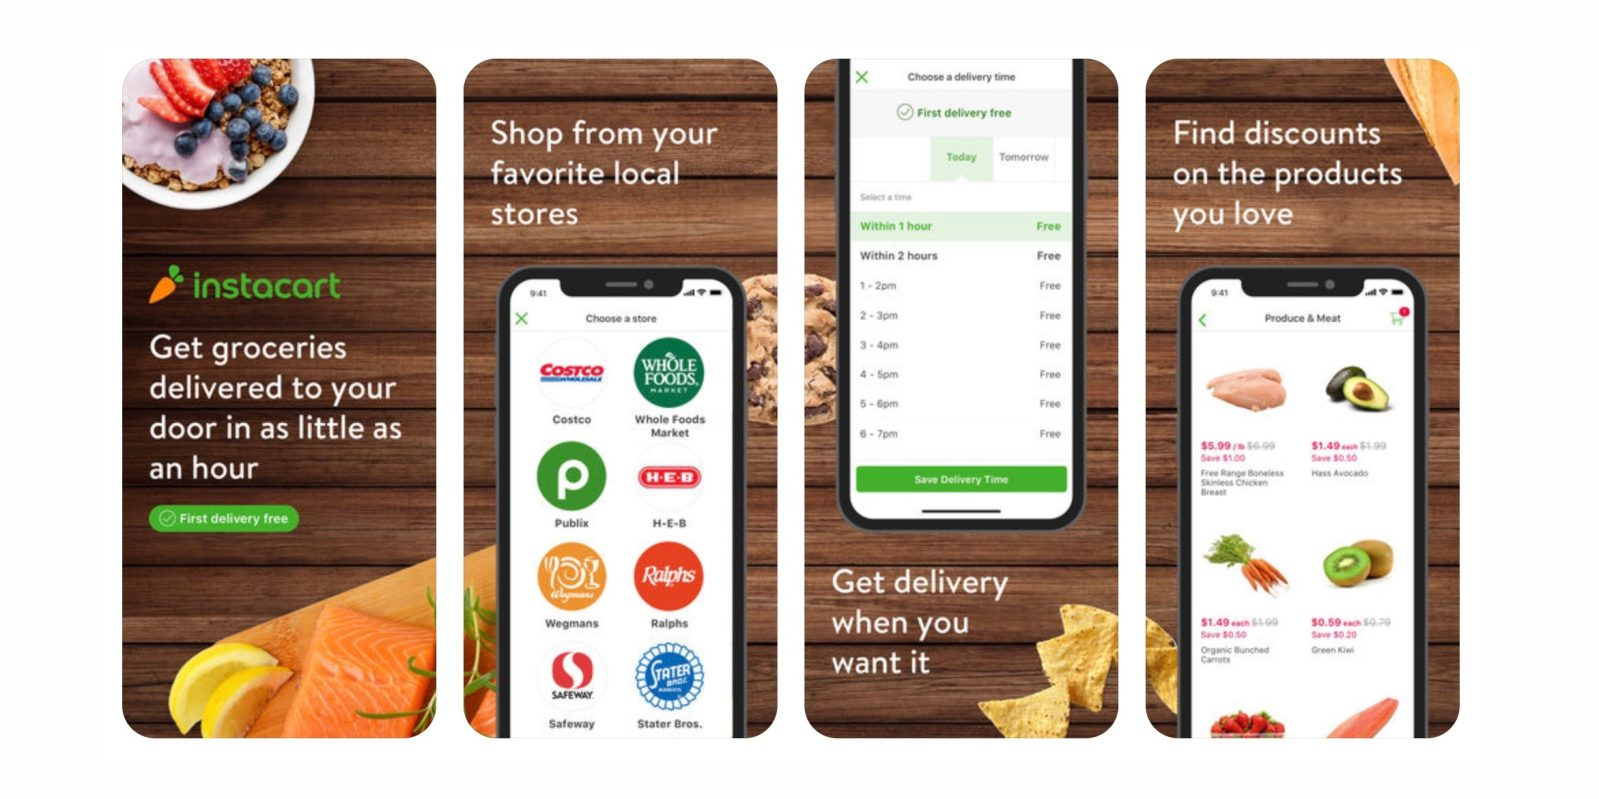 Latest Apple Pay promotion offering free grocery delivery